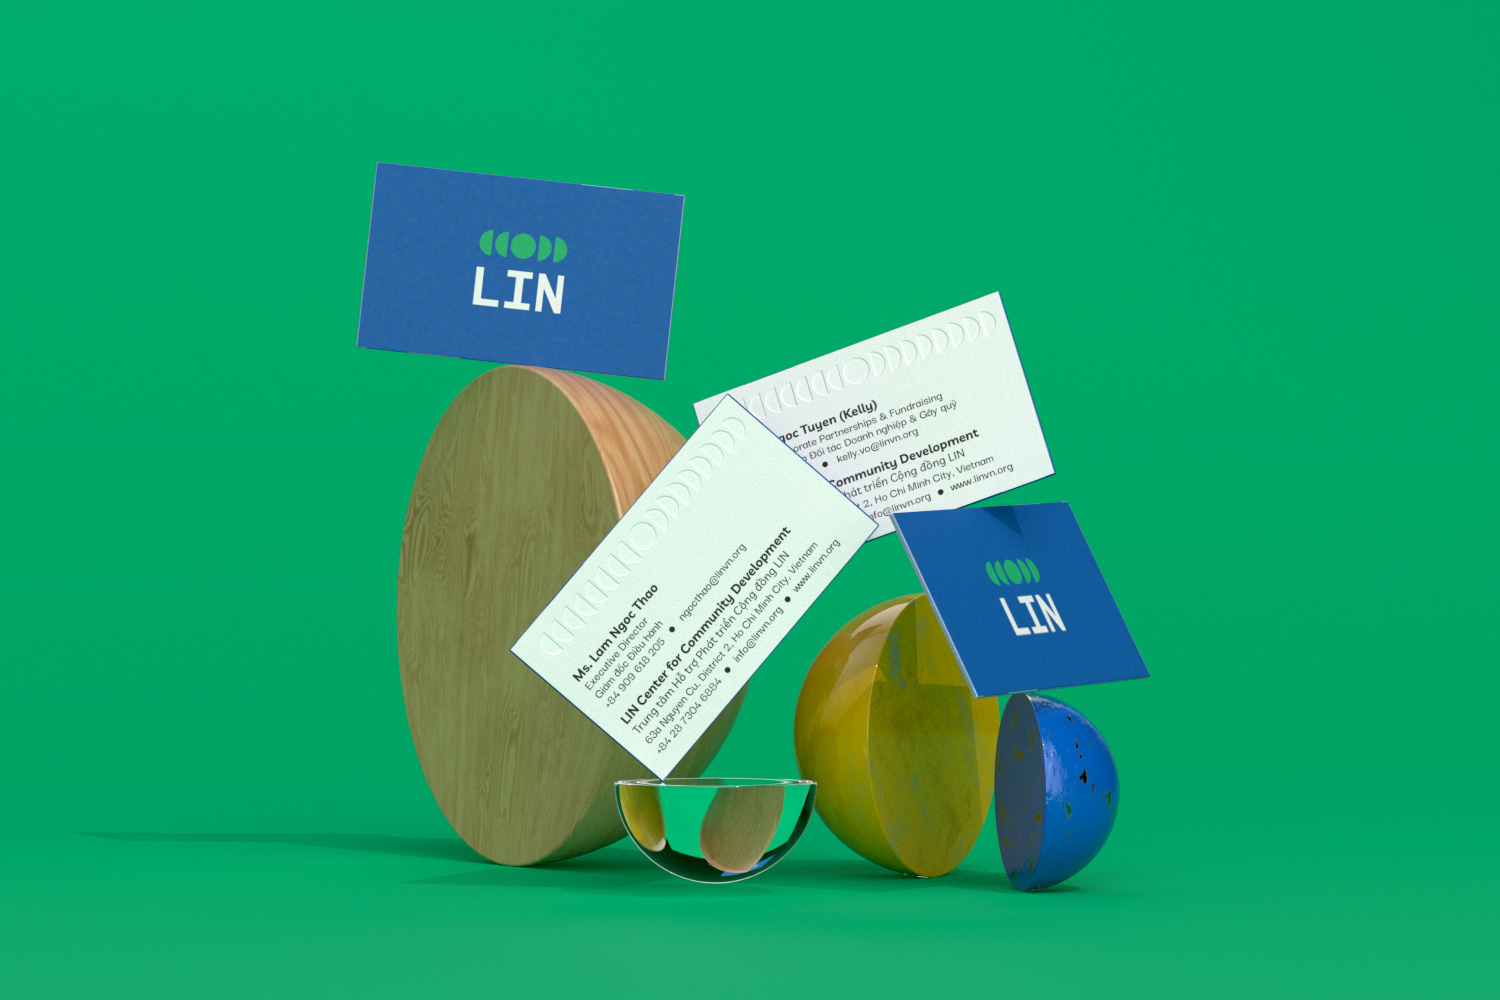 LIN business cards with props